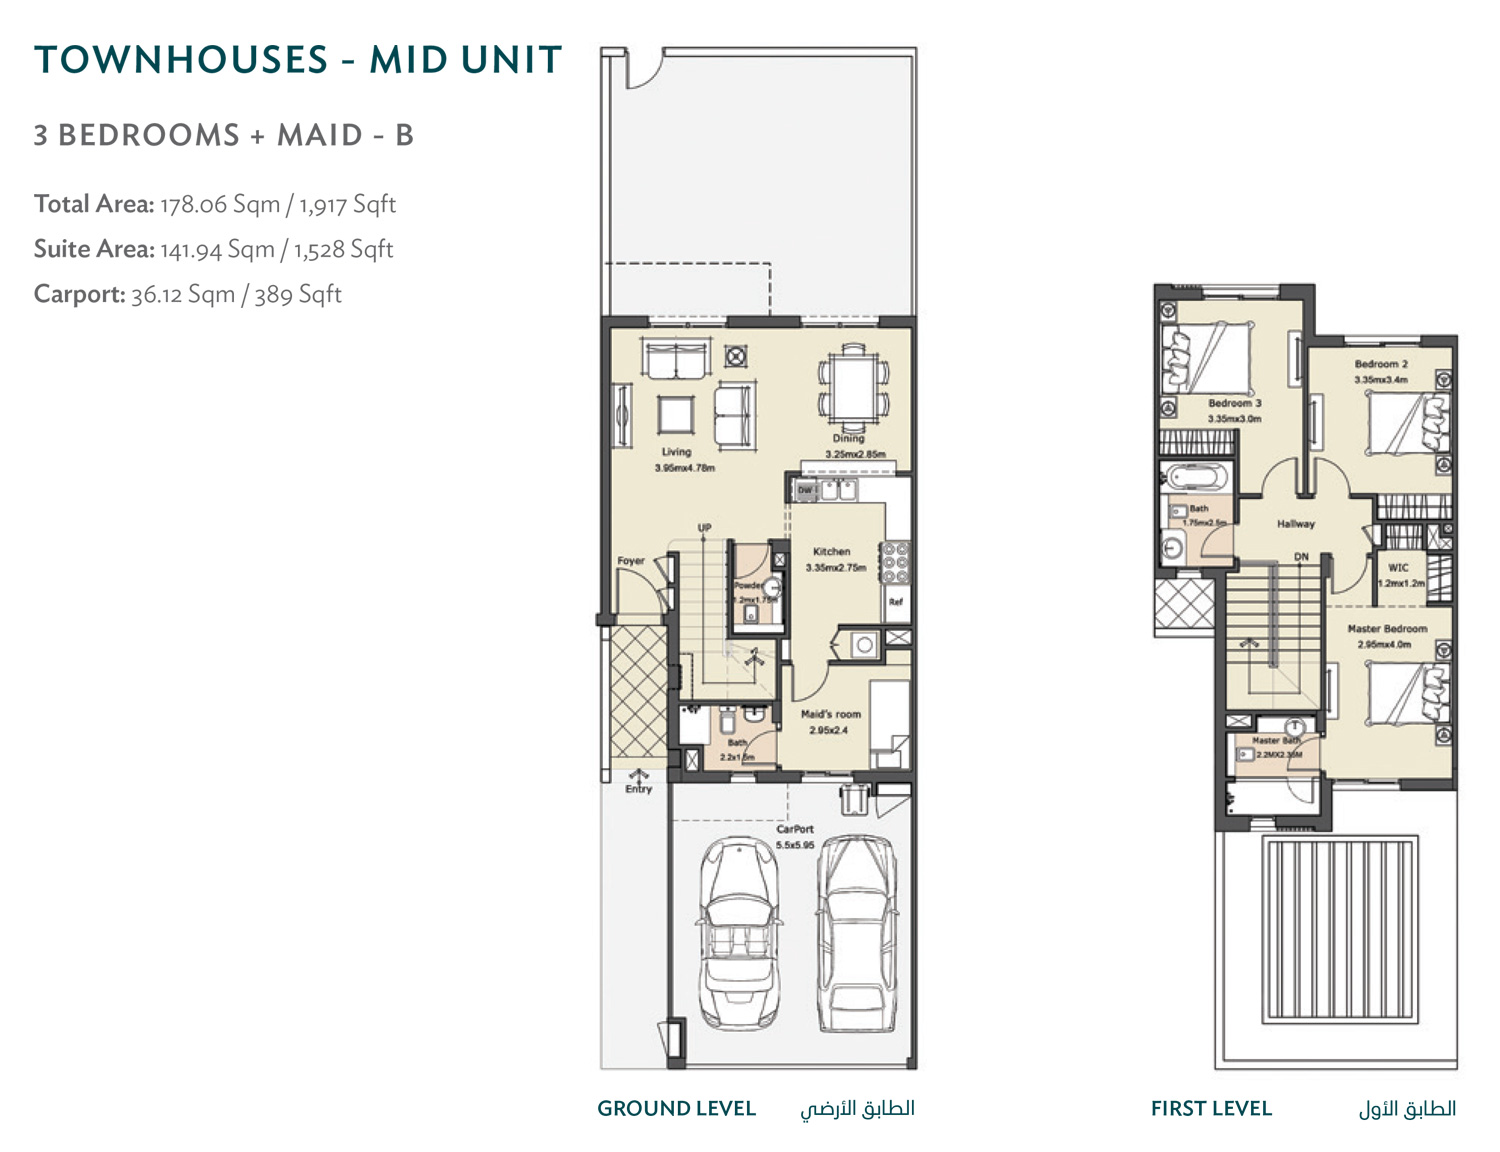 Phase 4 - 3 Bedroom + Maid-B